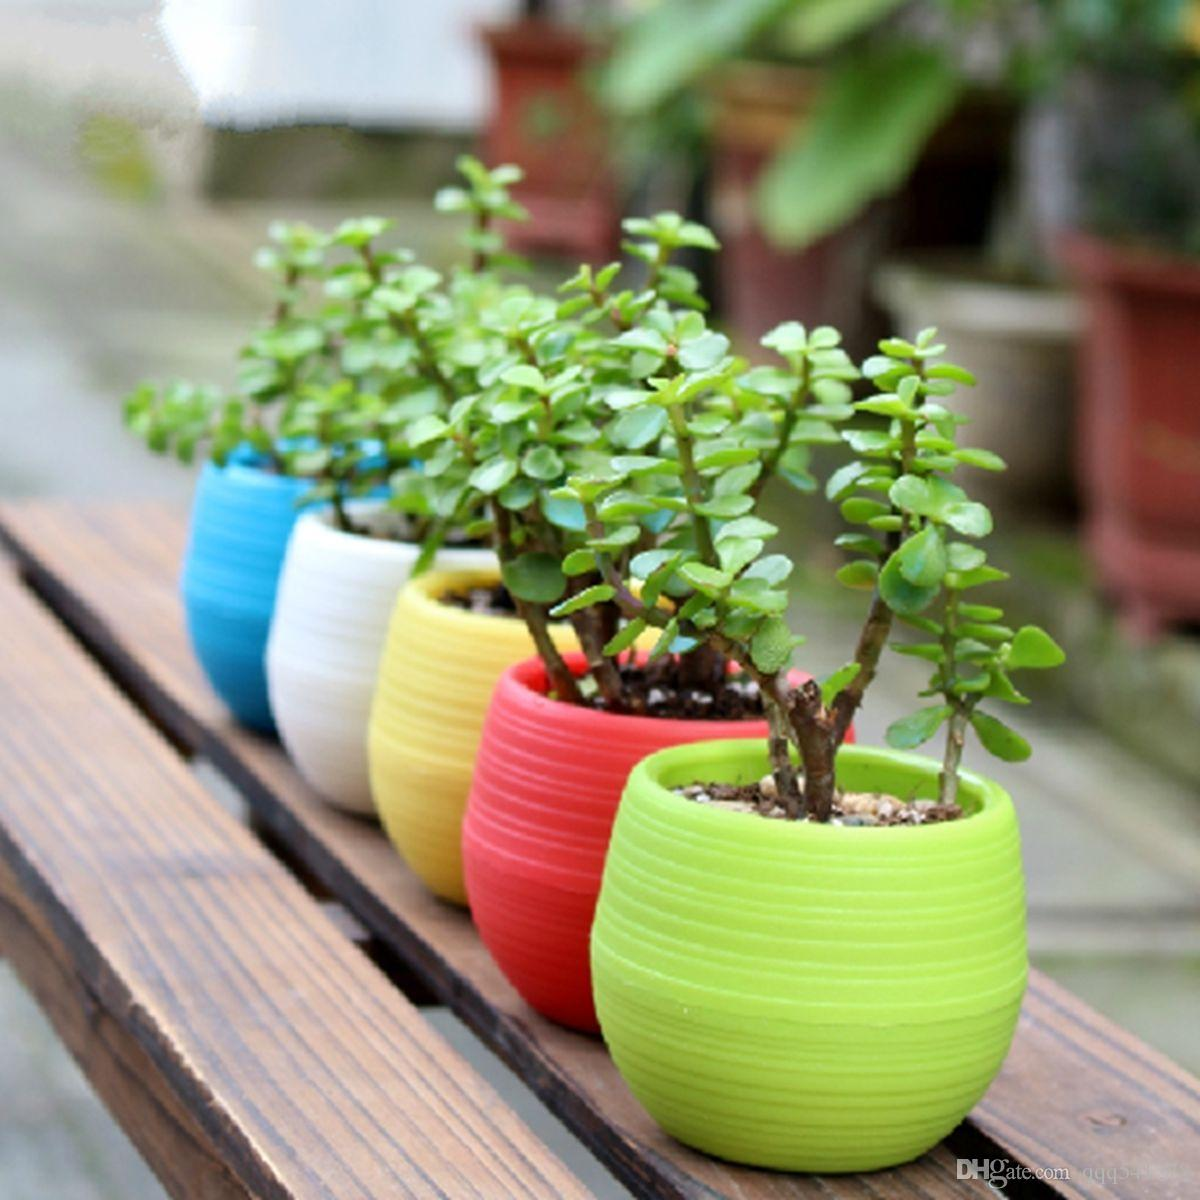 Colores De Macetas 5 Colores Macetas Mini Maceta Unbreakable Plastic Nursery Pots Adorable Afforest Aid Good Helper Use Para Jardín